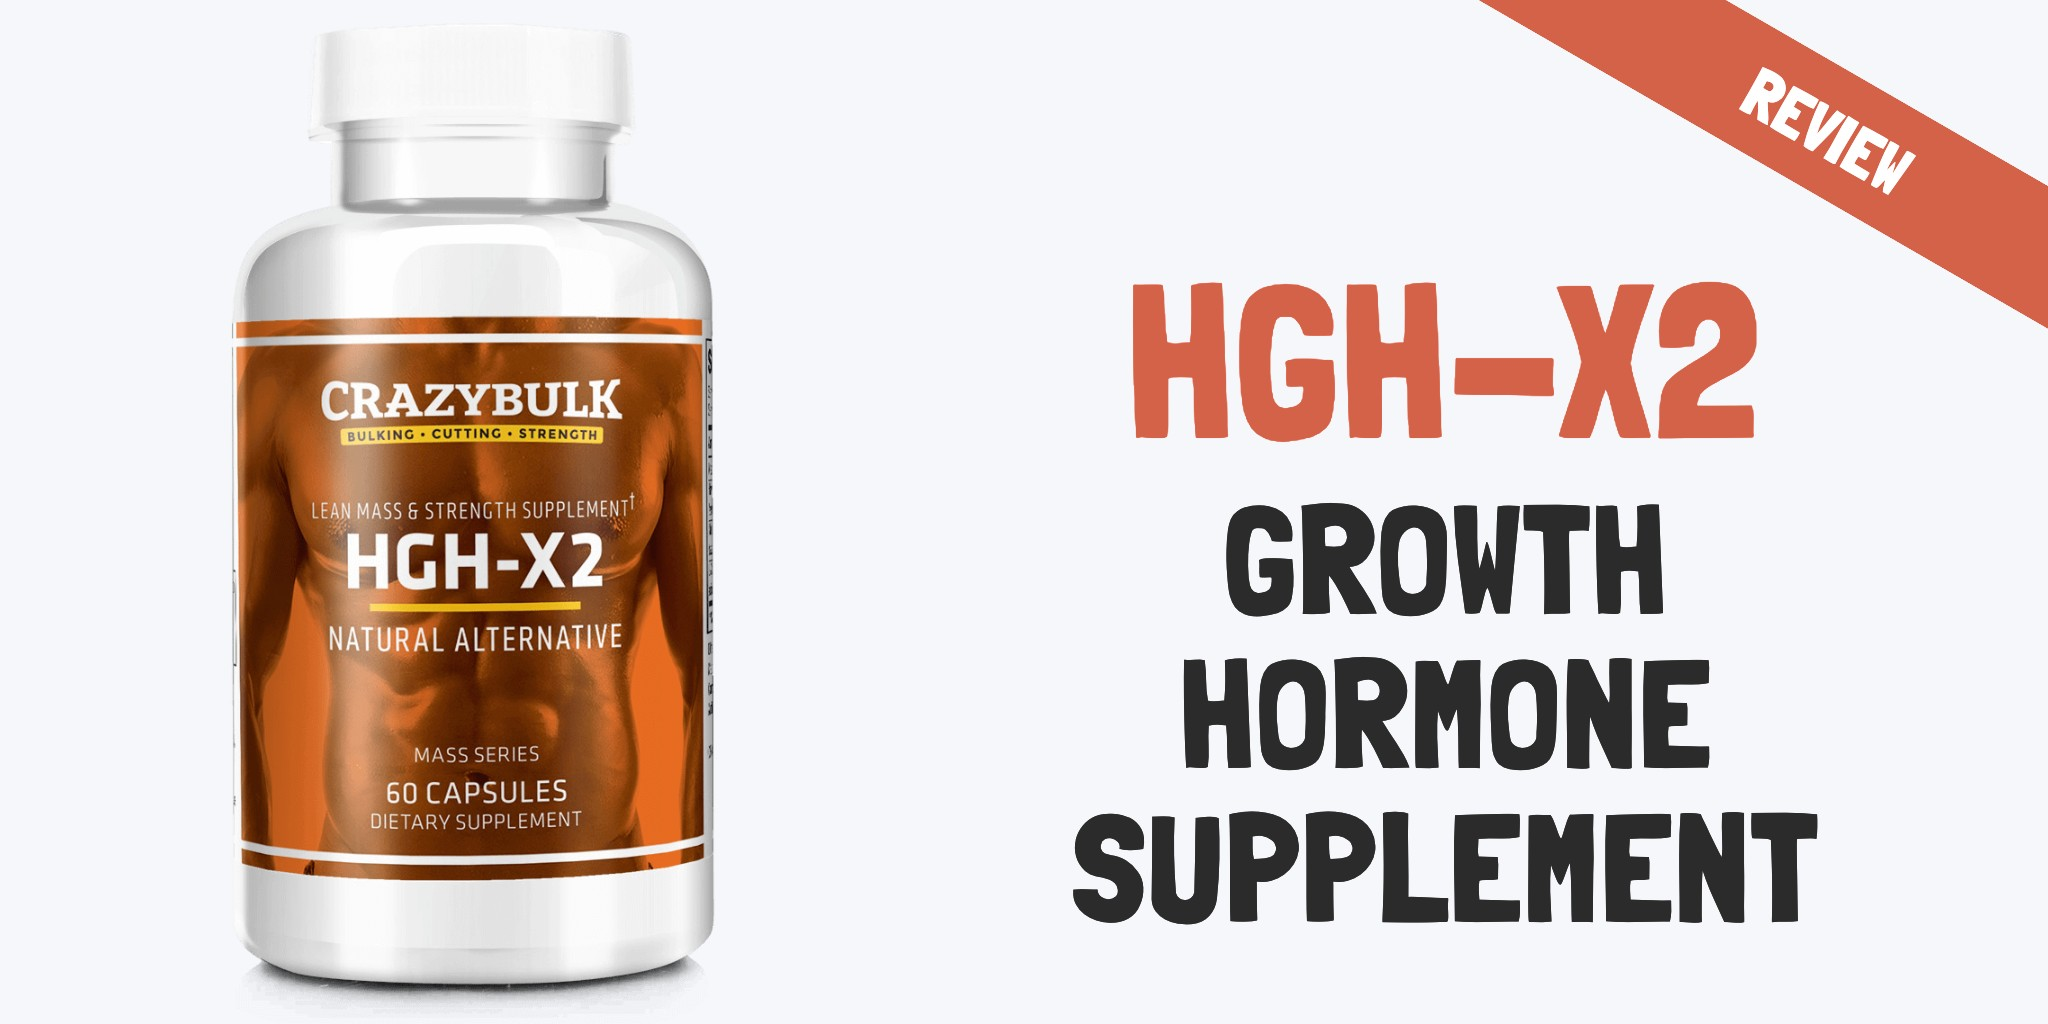 hgh x2 reviews of ingredients